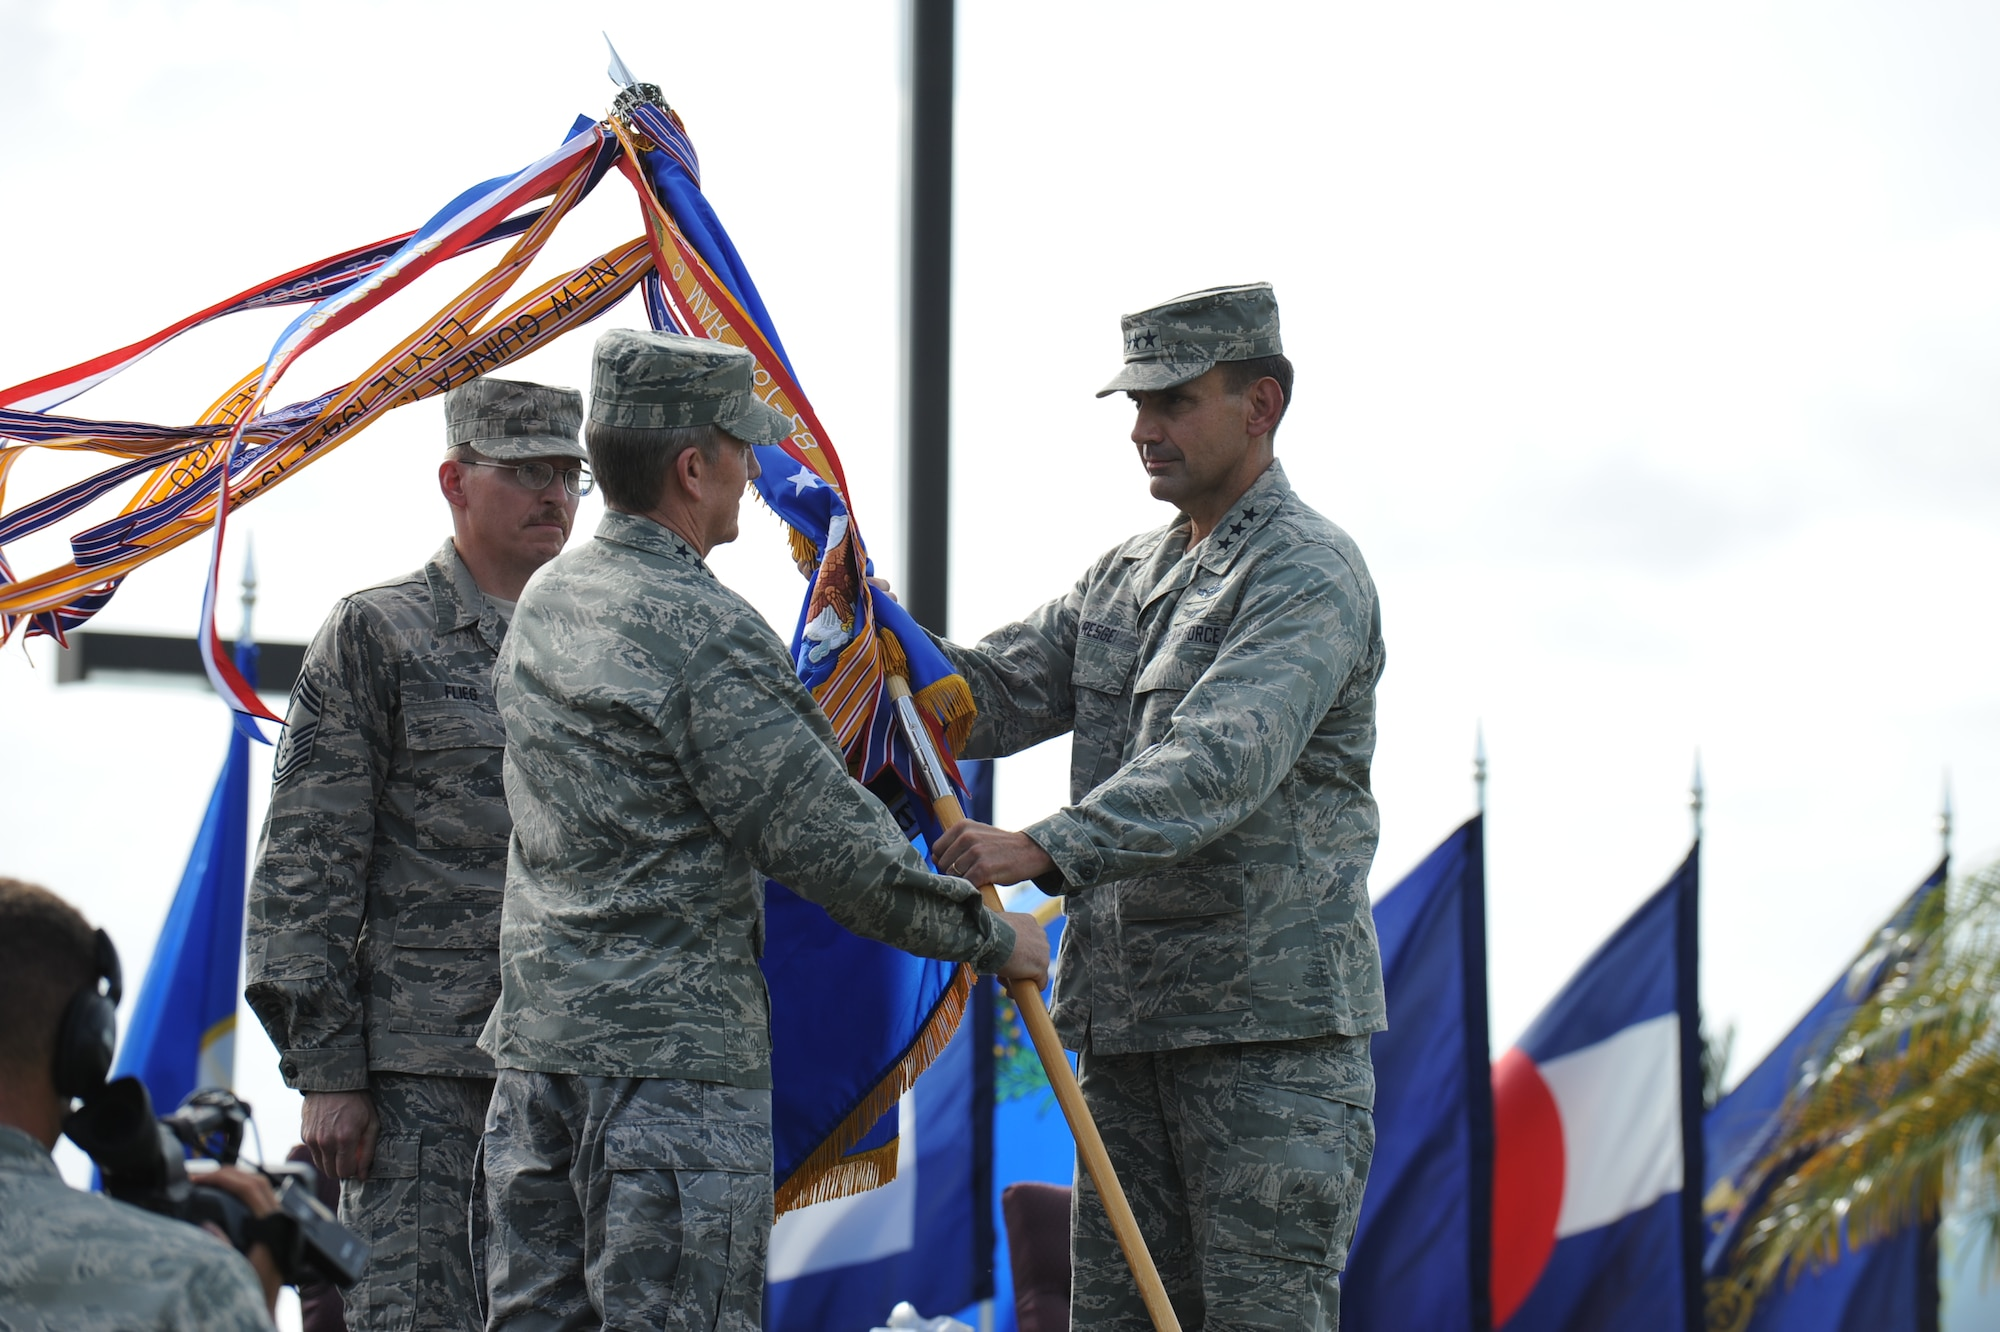 """Lt. Gen. Stanley T. Kresge, former 13th Air Force commander, passes the guidon to Gen. Herbert J. """"Hawk"""" Carlisle, Pacific Air Forces commander, to signify relinquishing his command during the 13th Air Force inactivation ceremony Sept. 28 at Joint Base Pearl Harbor-Hickam, Hawaii. (U.S. Air Force photo/Master Sgt. Victoria Meyer)"""